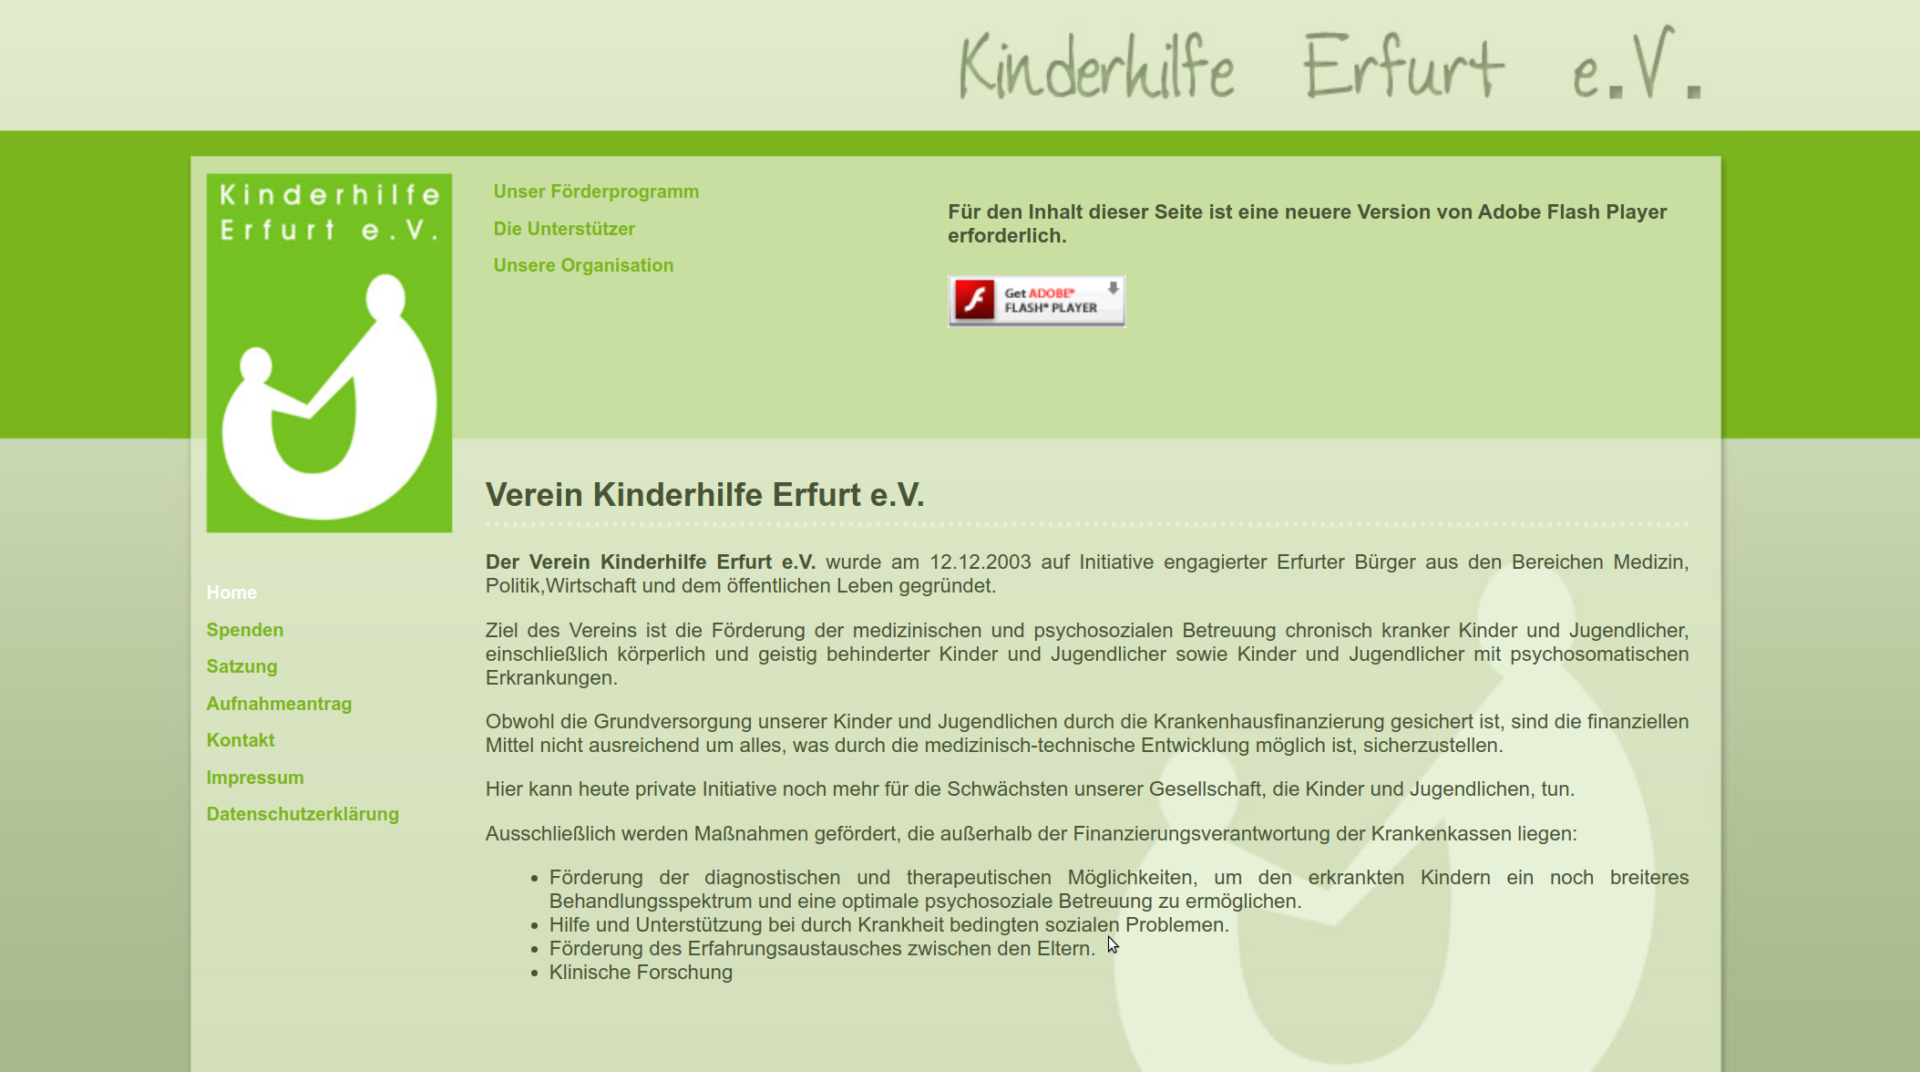 Website screenshot of the association Kinderhilfe Erfurt e.V.